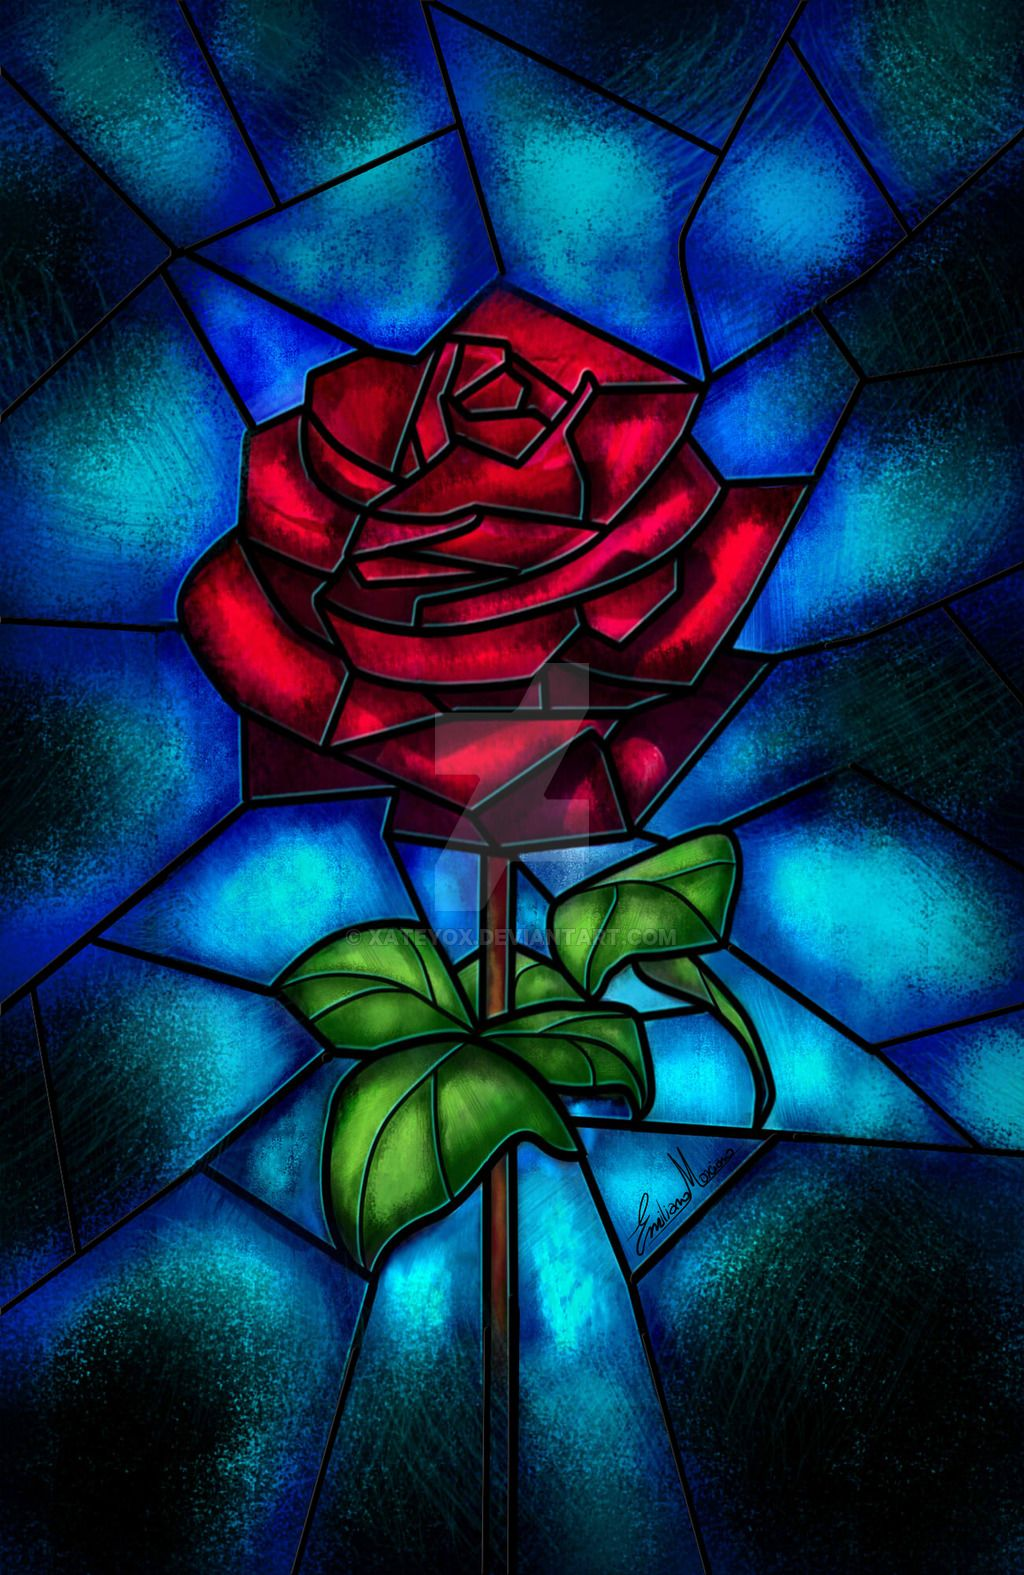 Eternal Rose Disney Stained Glass Disney Beauty And The Beast Disney Drawings